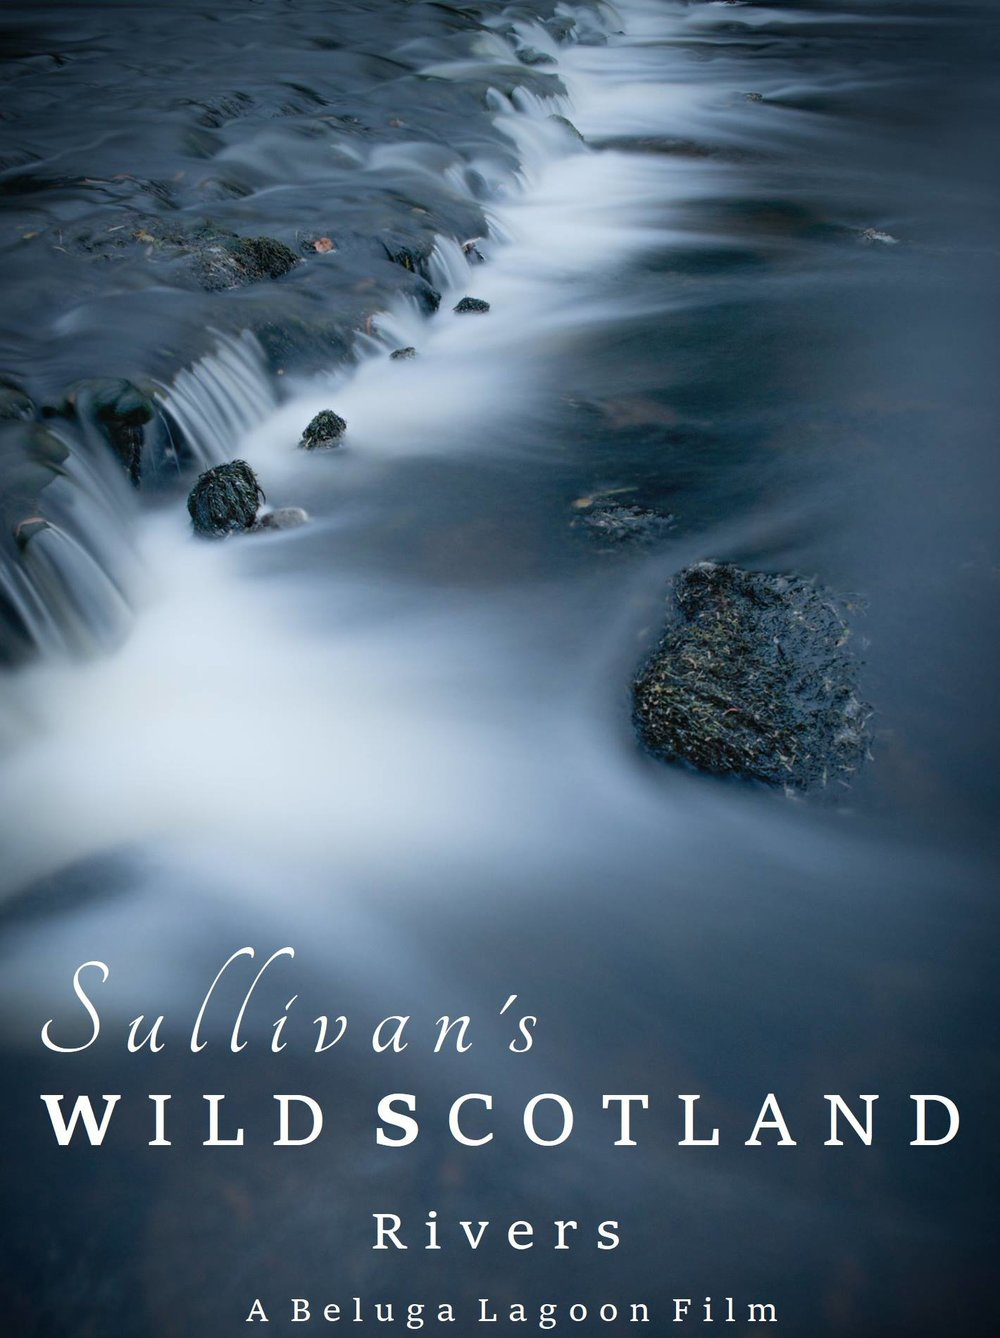 Sullivan's Wild Scotland Rivers